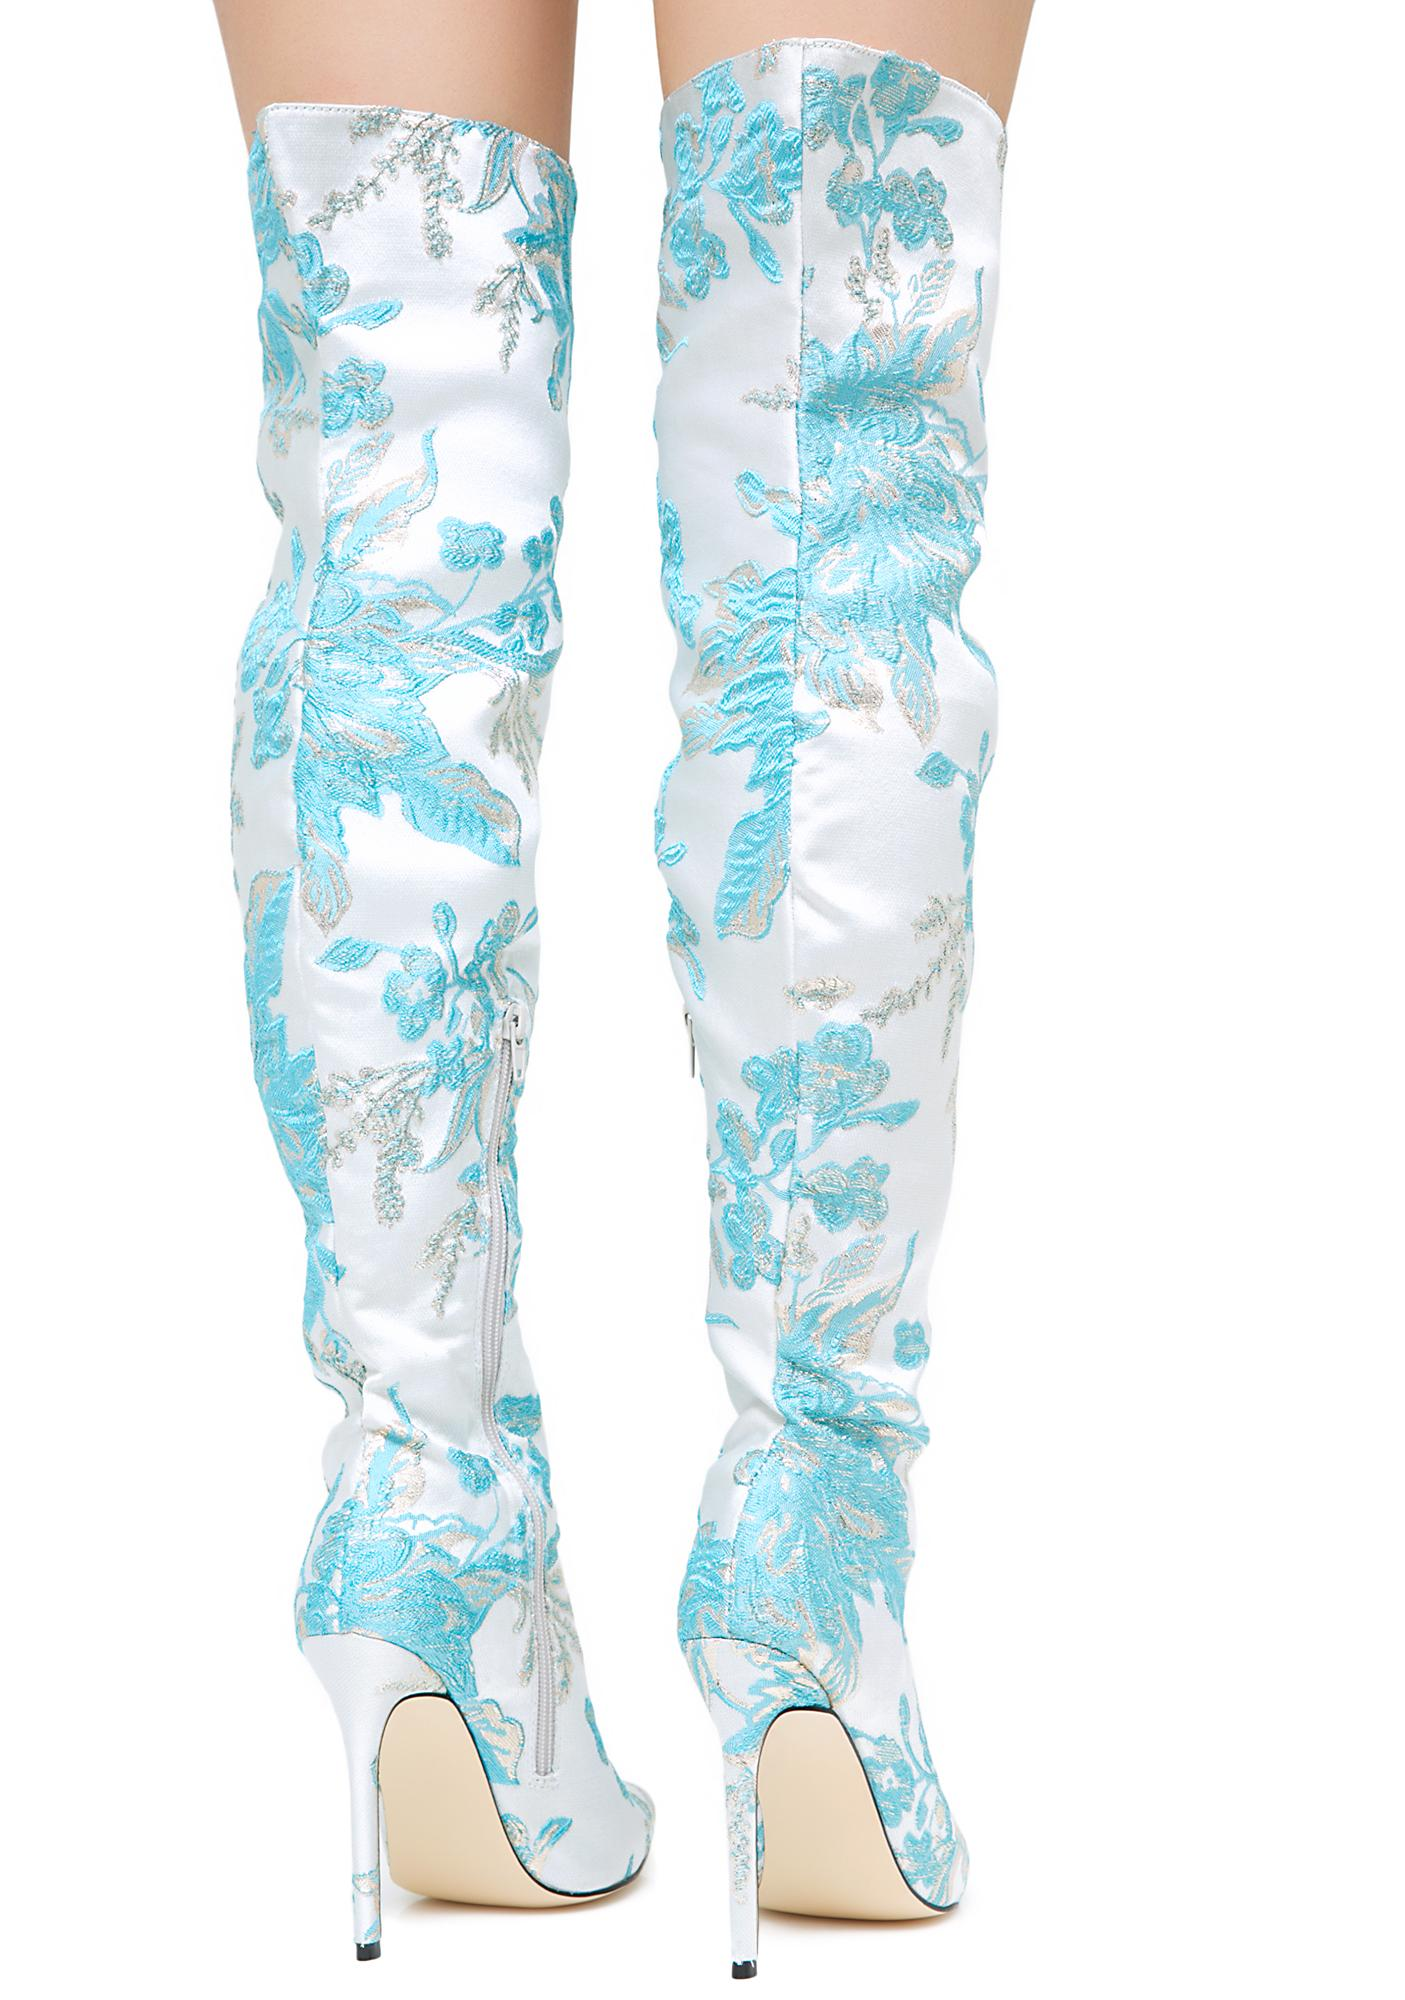 Privileged Varden Thigh High Boots